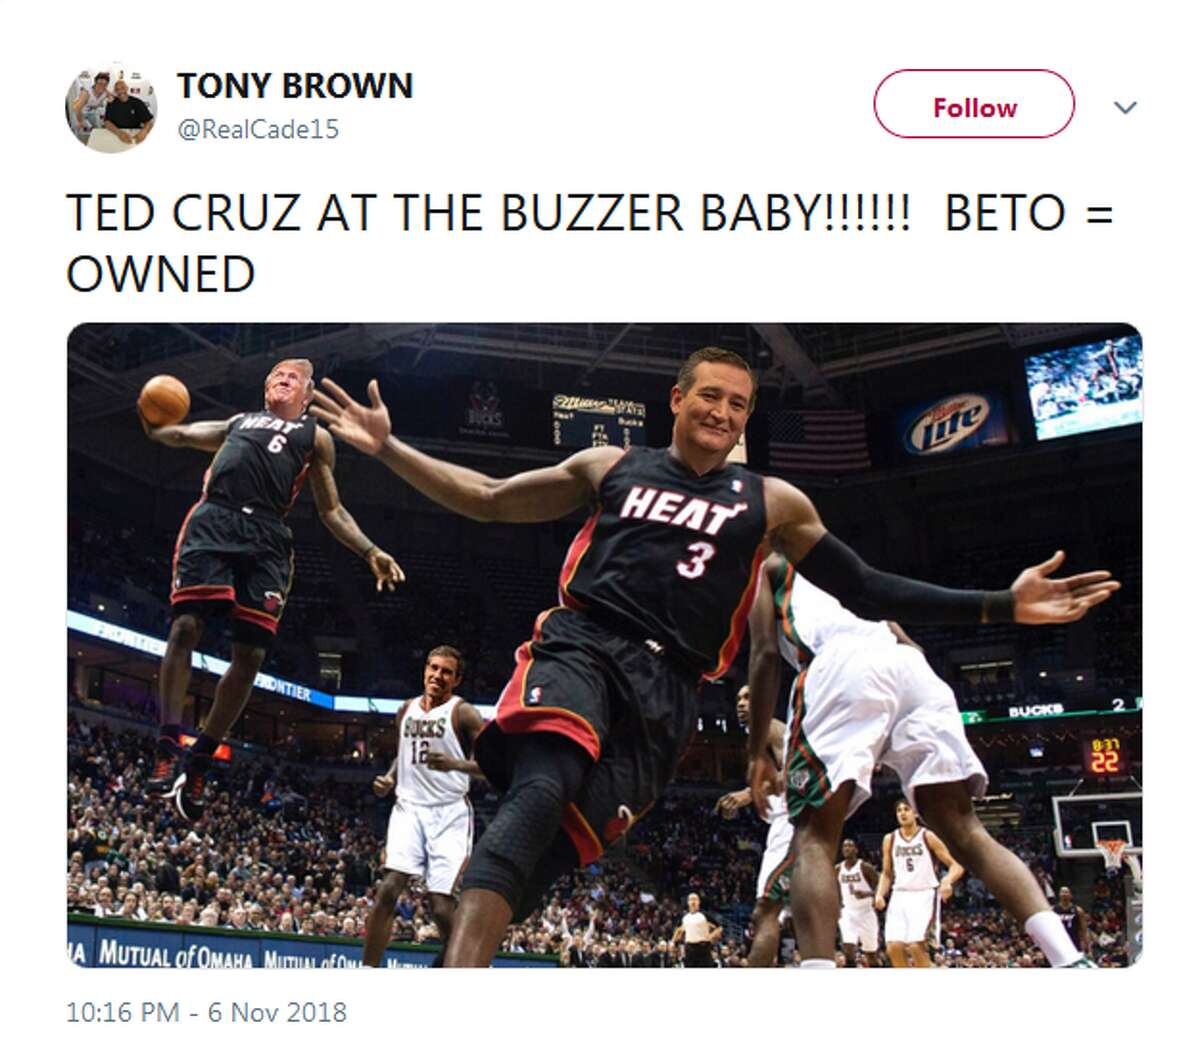 @RealCade15: TED CRUZ AT THE BUZZER BABY!!!!!! BETO = OWNED